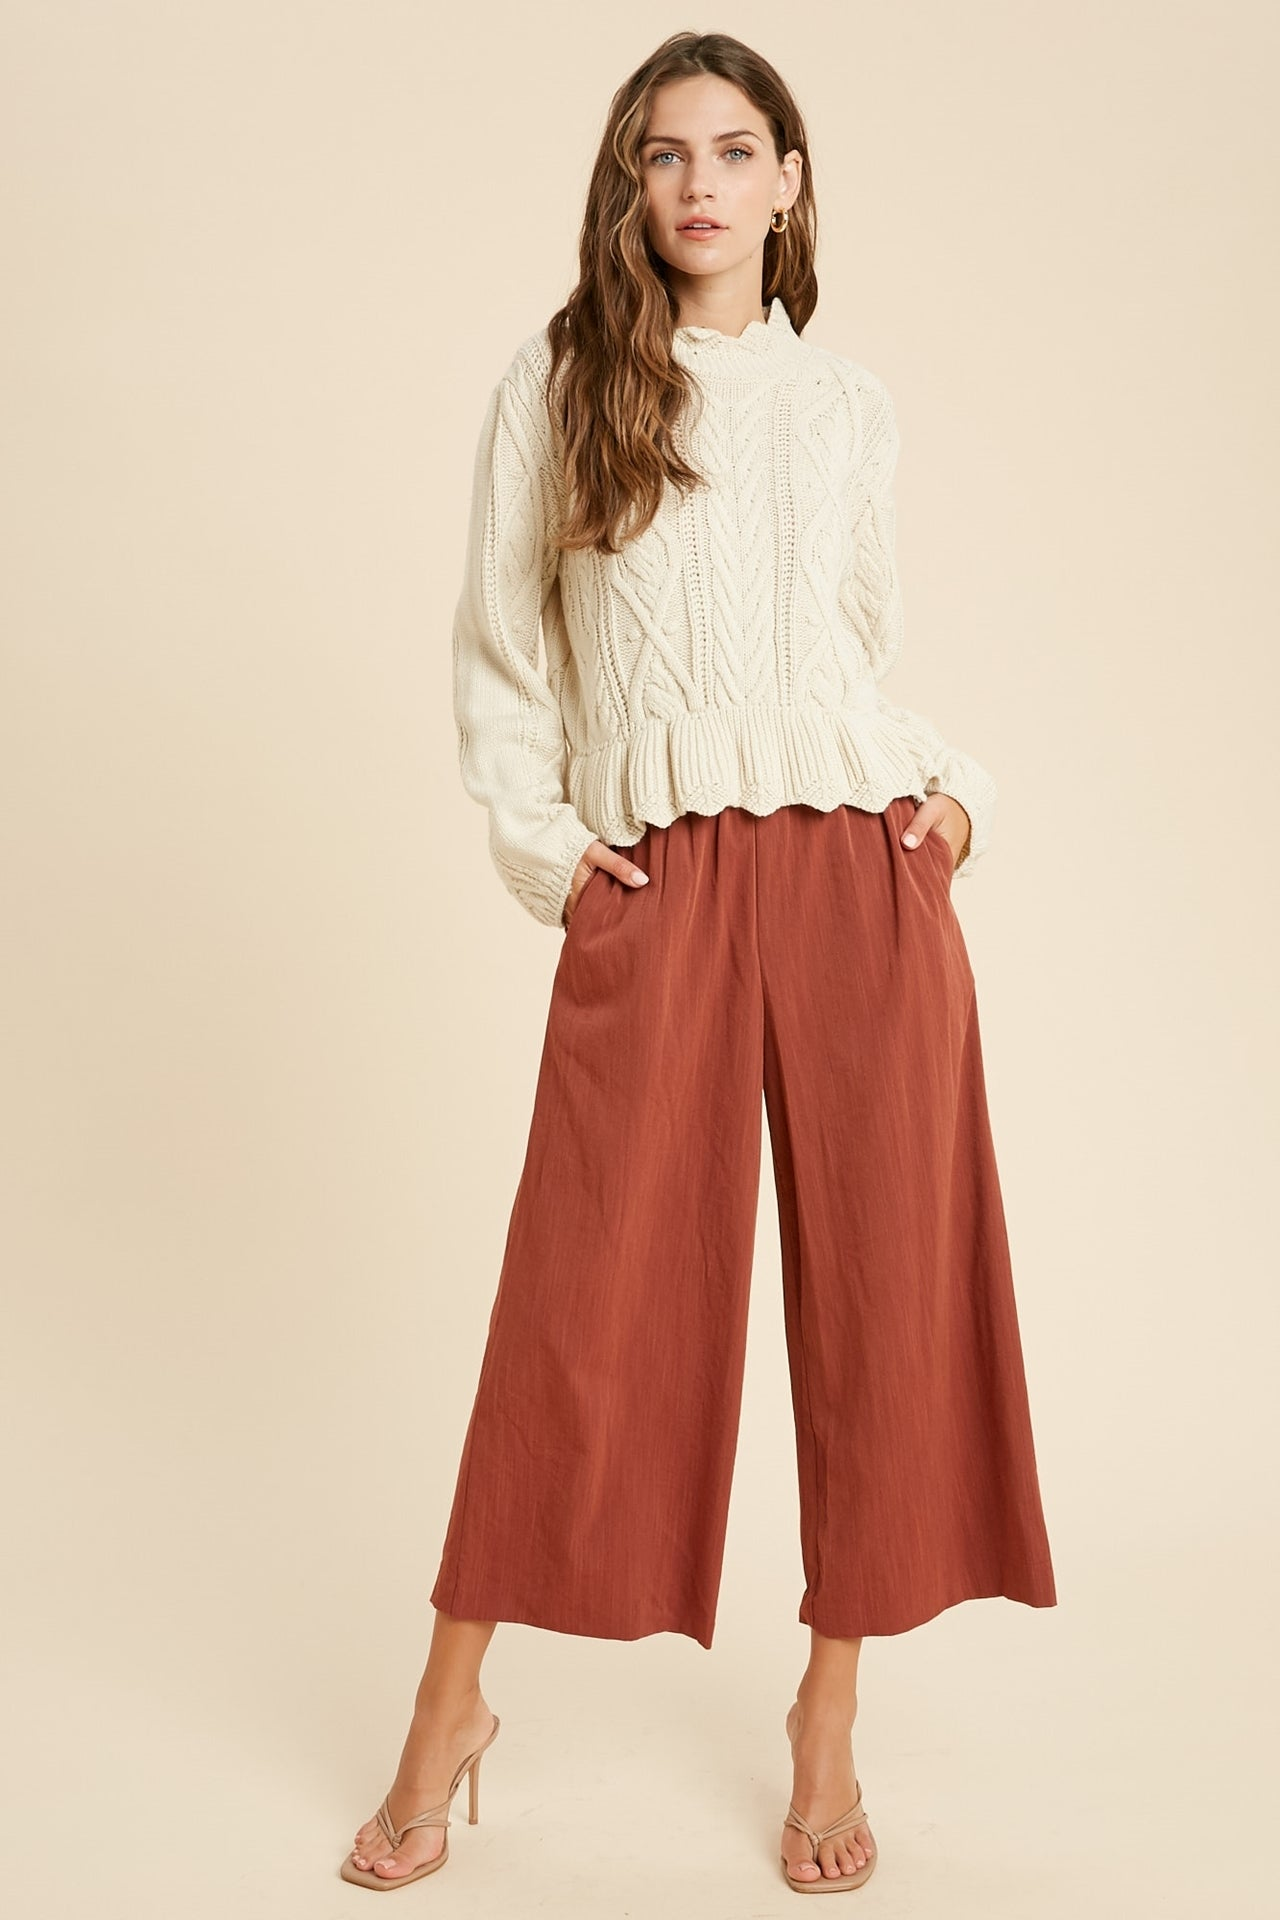 Weldon Shirred Waist Wide Leg Pants - Rust-Pants-Branded Envy